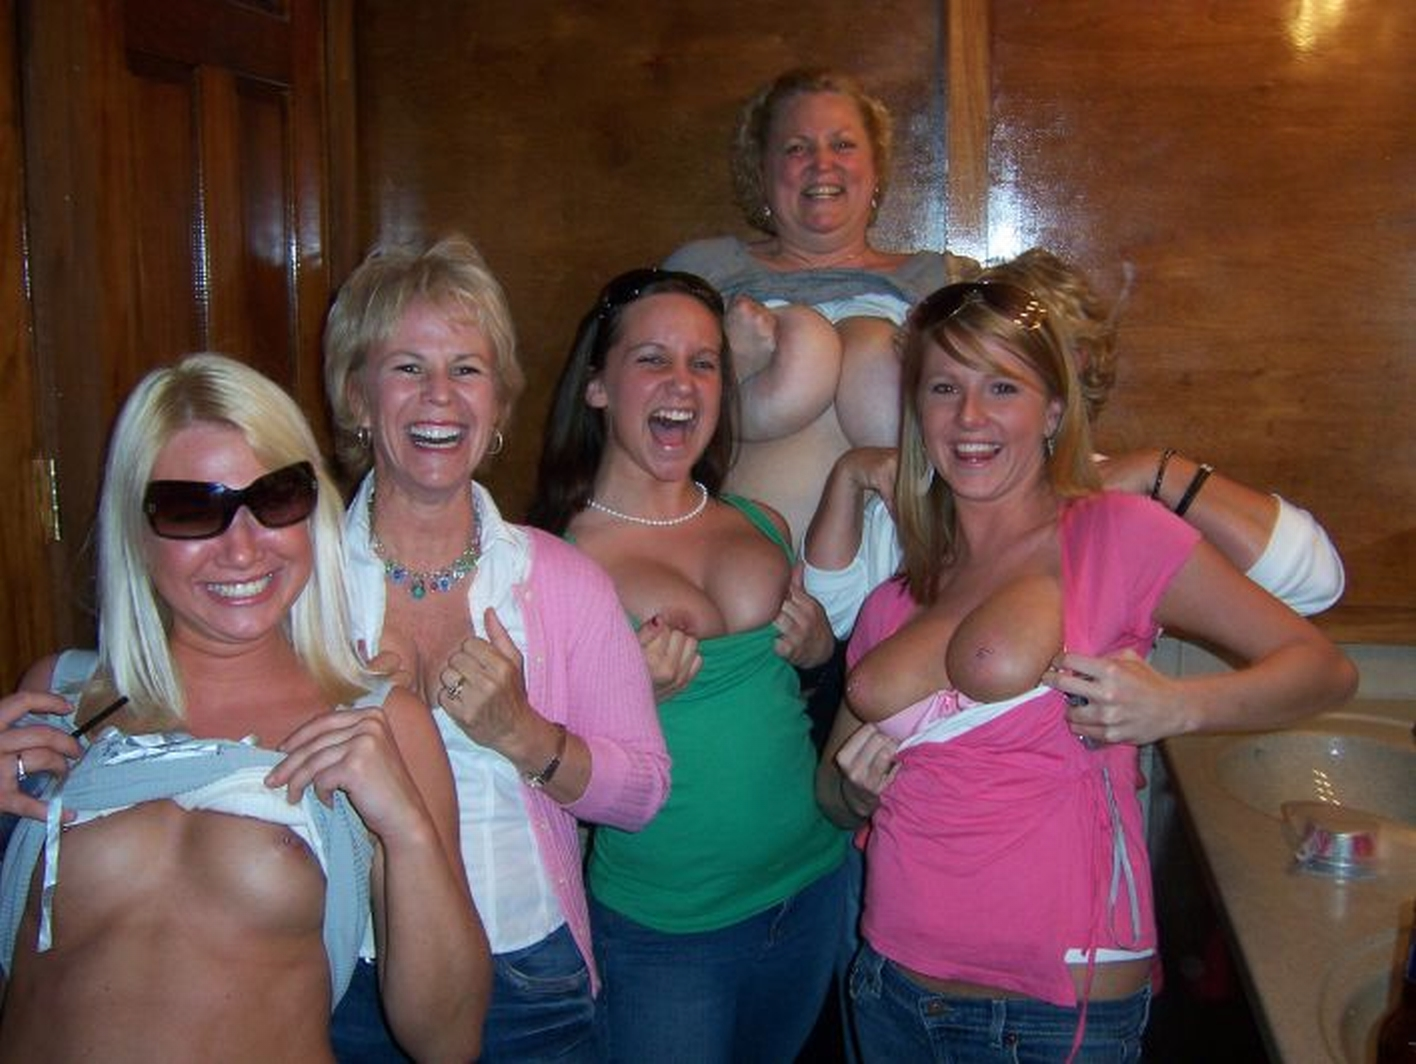 Question You Nude girls group flashing tits something